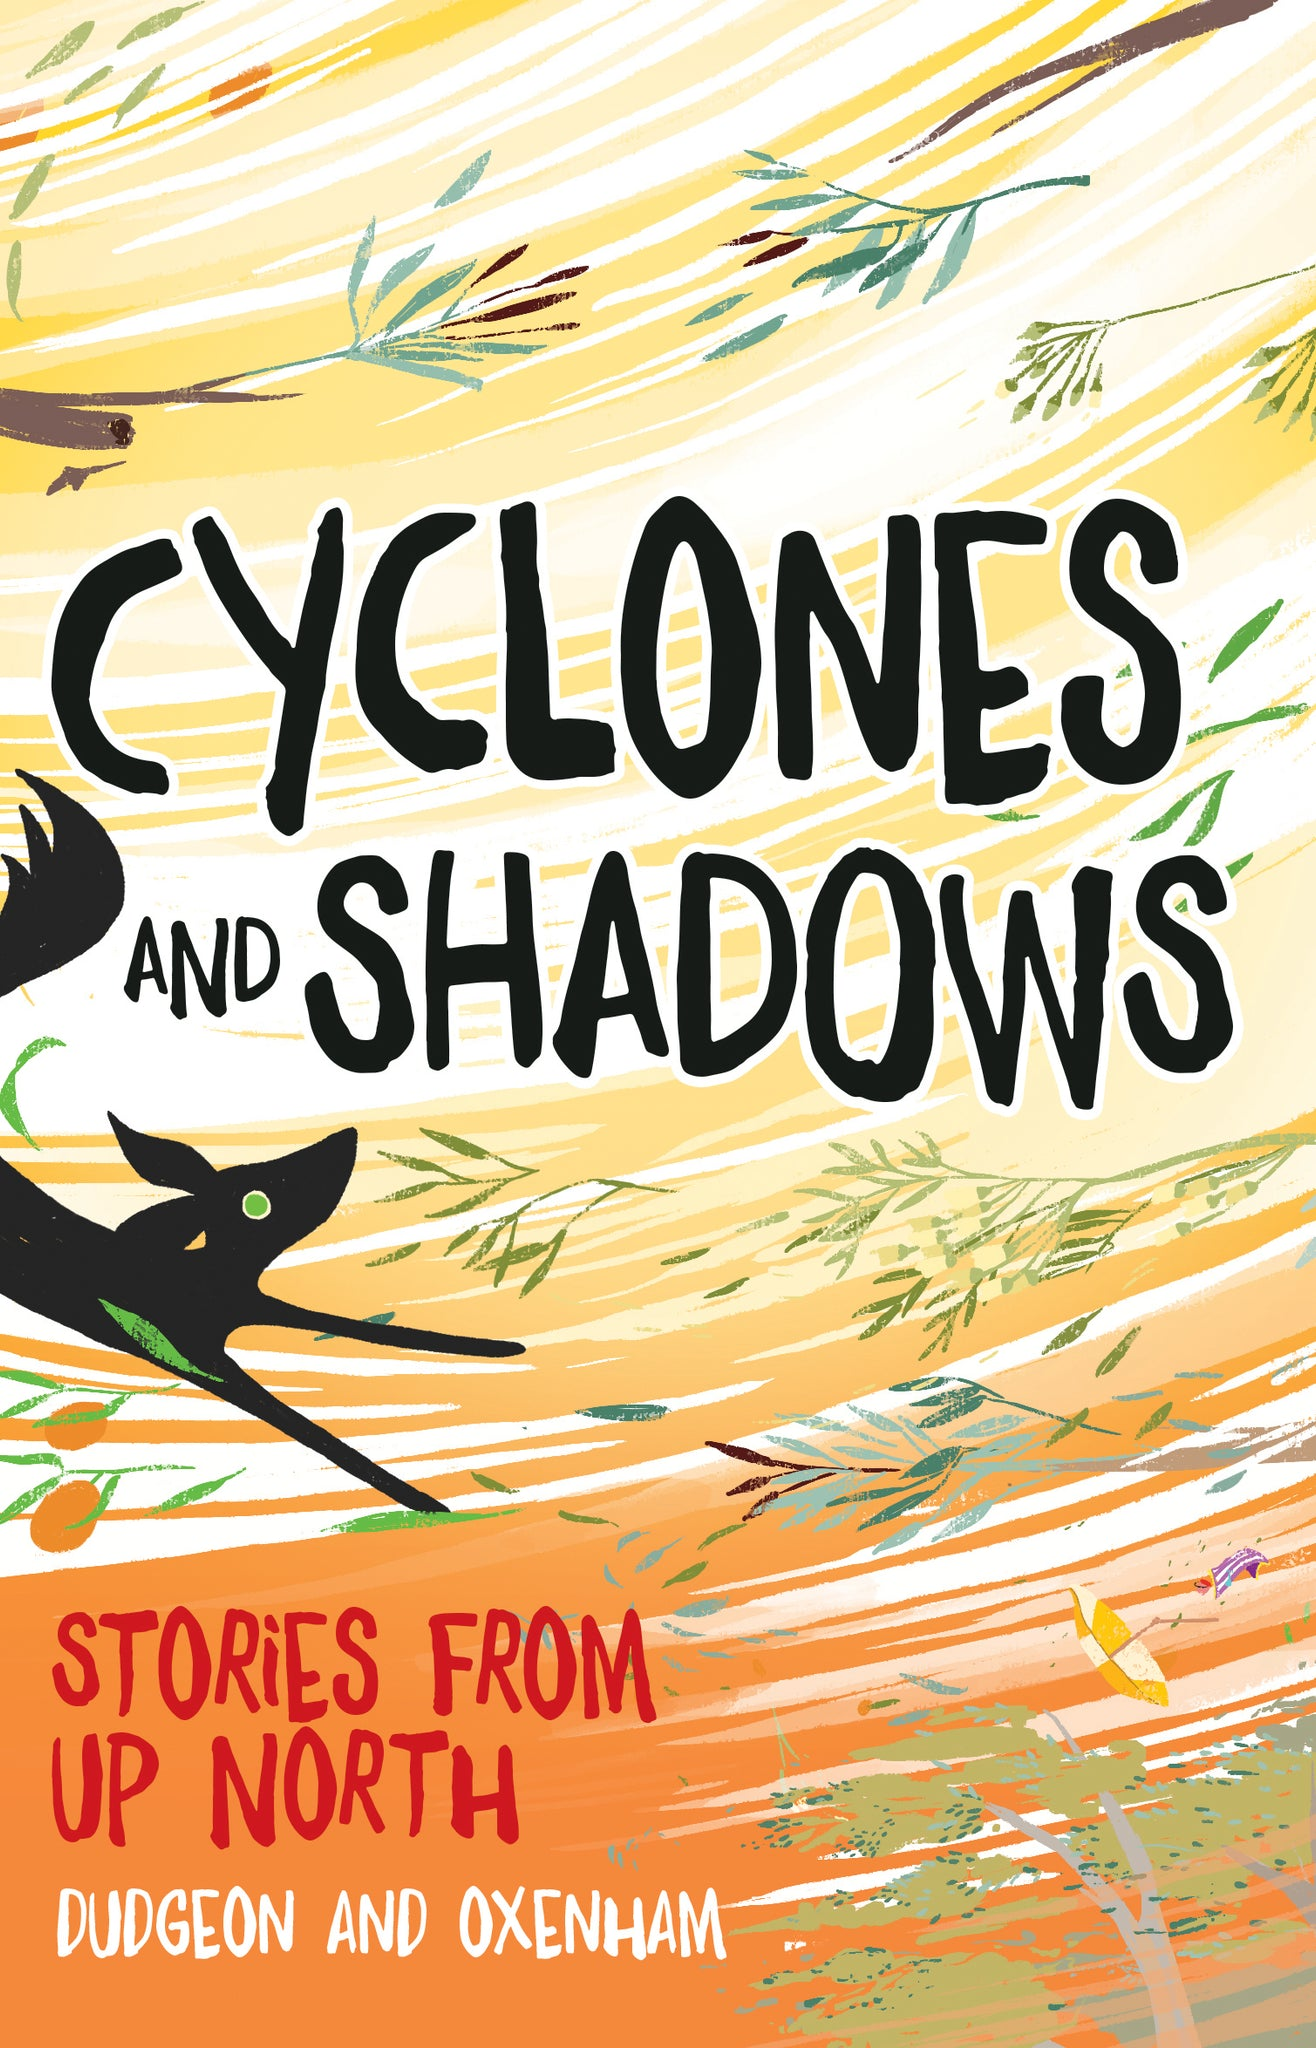 Written by Pat Dudgeon, Sabrina Dudgeon, Darlene Oxenham, and Laura Dudgeon - Cyclones and Shadows ; Children's Paperback (m/fac010)